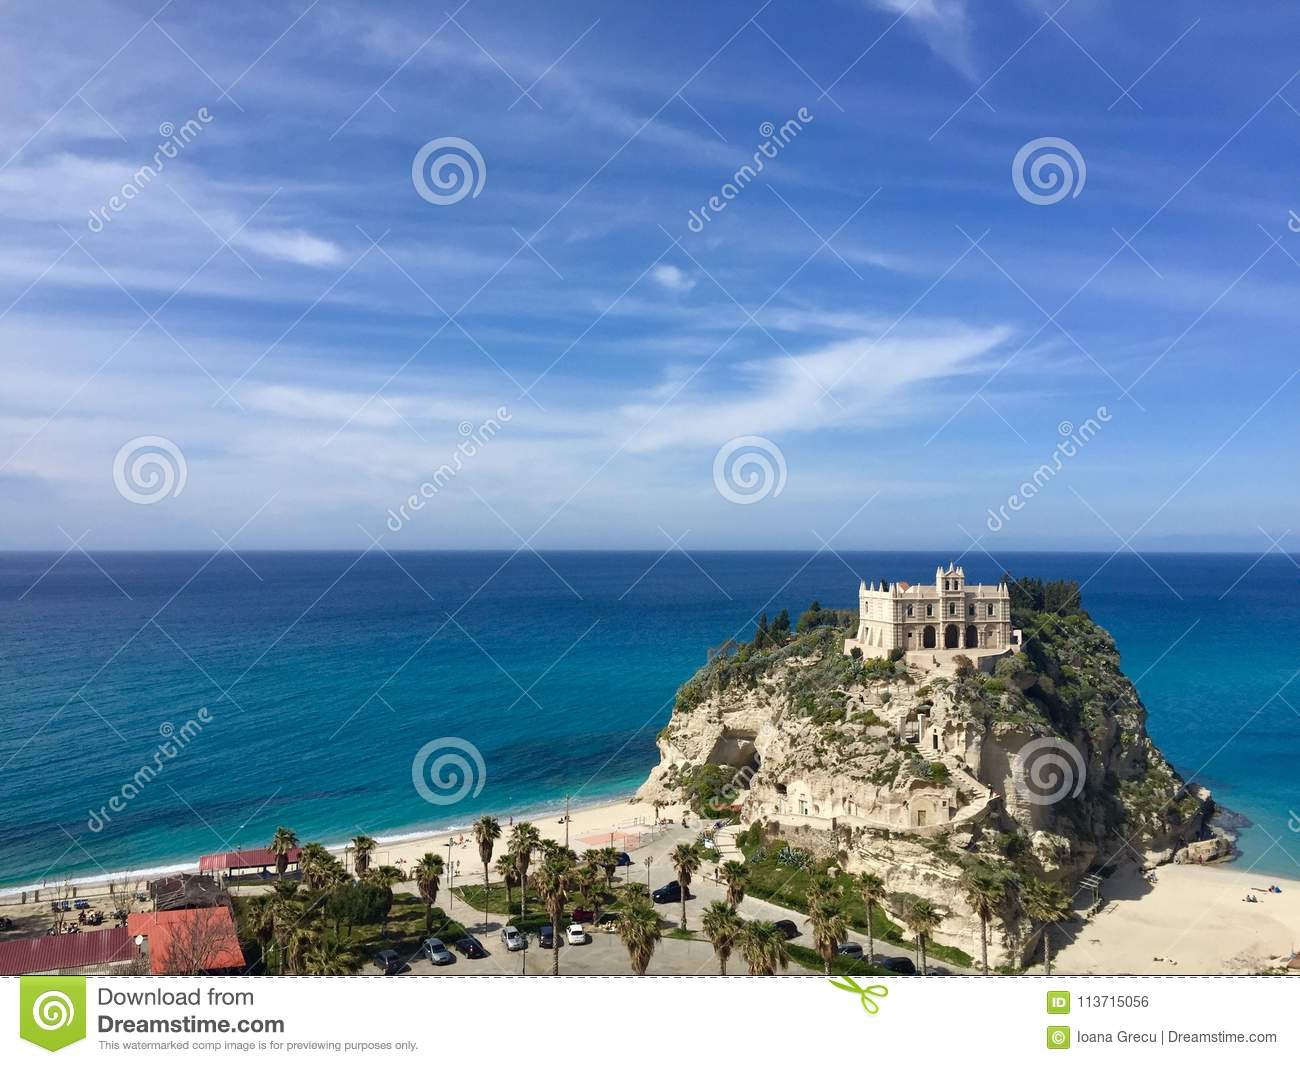 Sanctuary of the Madonna of the Island of Tropea, italy